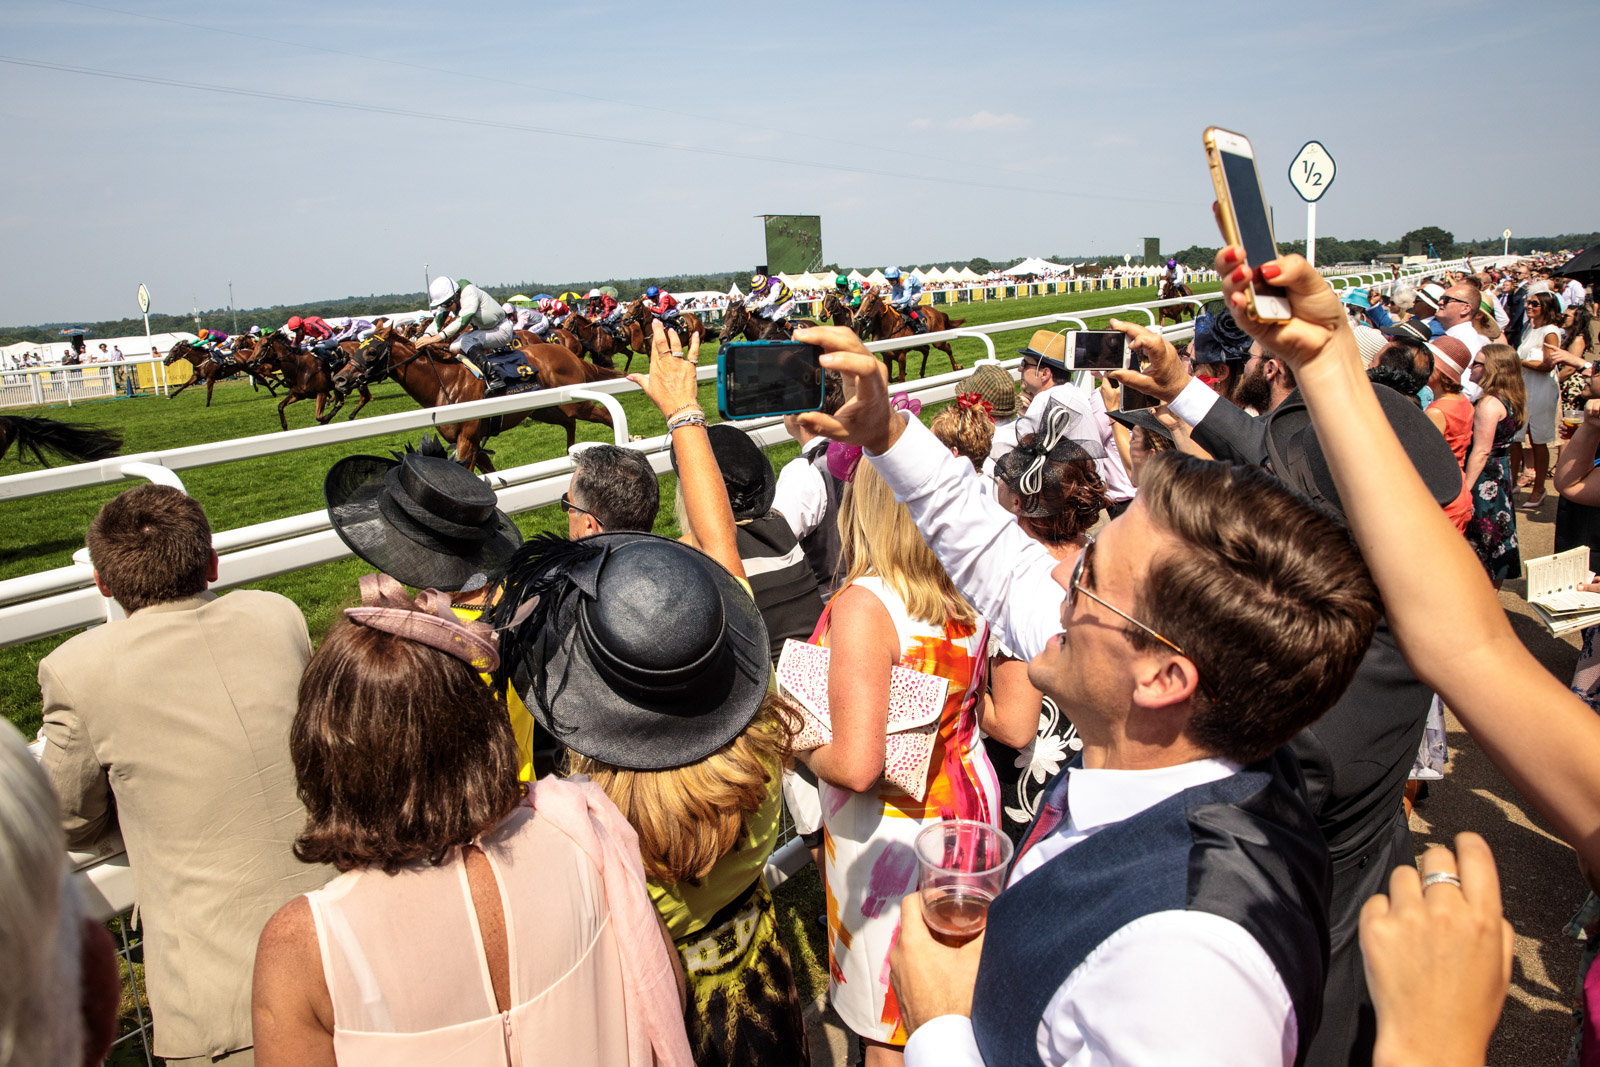 Racegoers take pictures during a race at Royal Ascot 2017 at Ascot Racecourse on June 21, 2017 in Ascot.